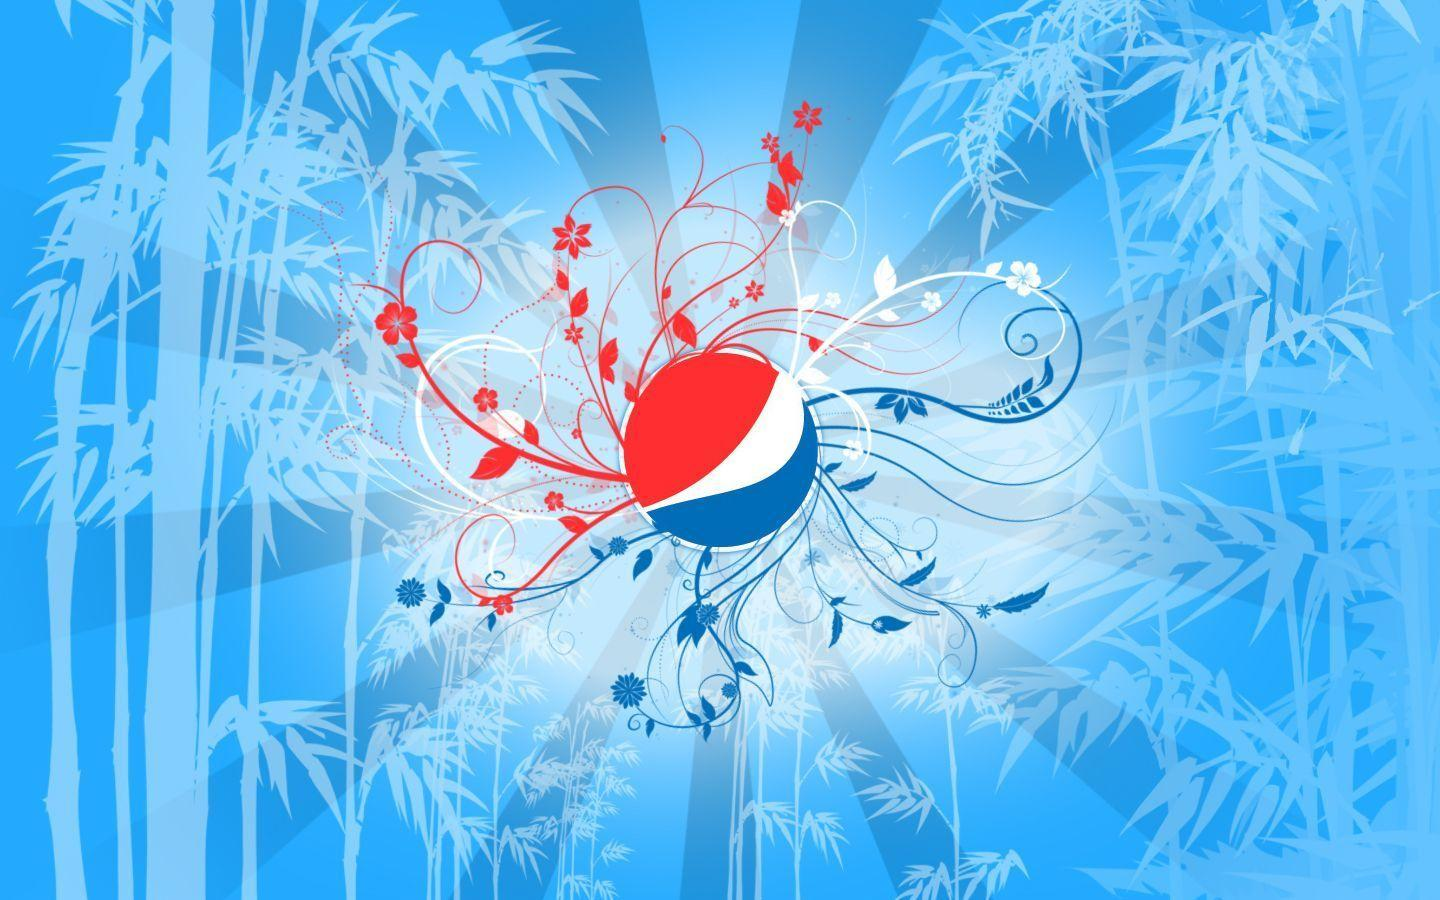 pepsi vintage wallpaper - photo #14